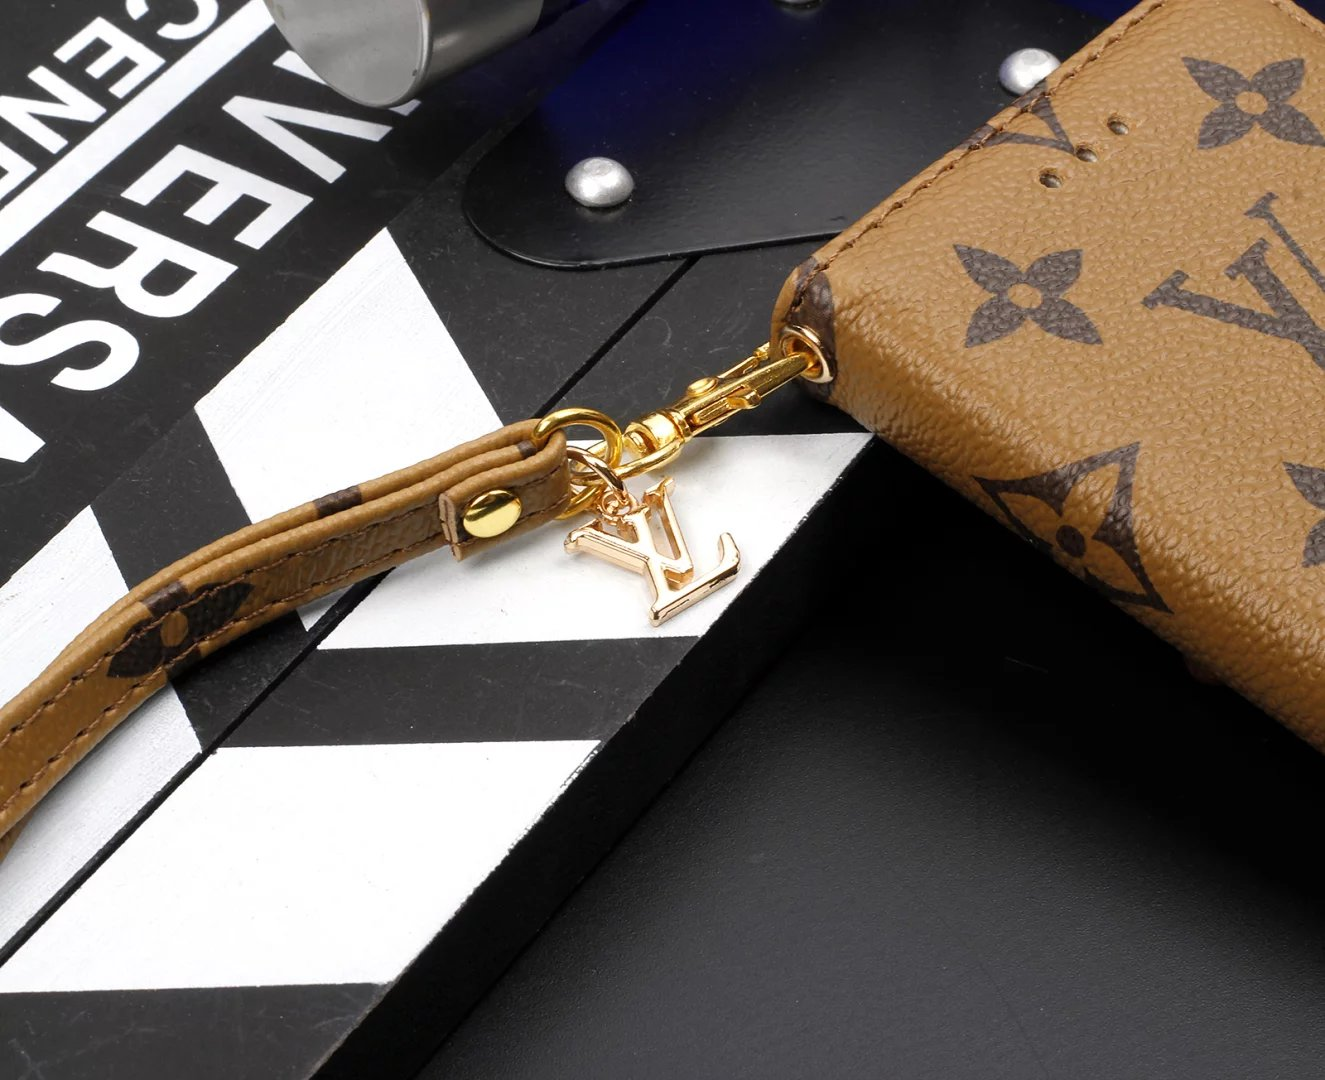 iphone hüllen bestellen iphone hülle individuell Louis Vuitton iphone6 plus hülle original apple iphone hülle iphone 6 Plus ohne hülle iphone 6 Plus original hülle original iphone 6 Plus hülle klapptasche iphone 6 Plus handyhülle iphone 6 Plus